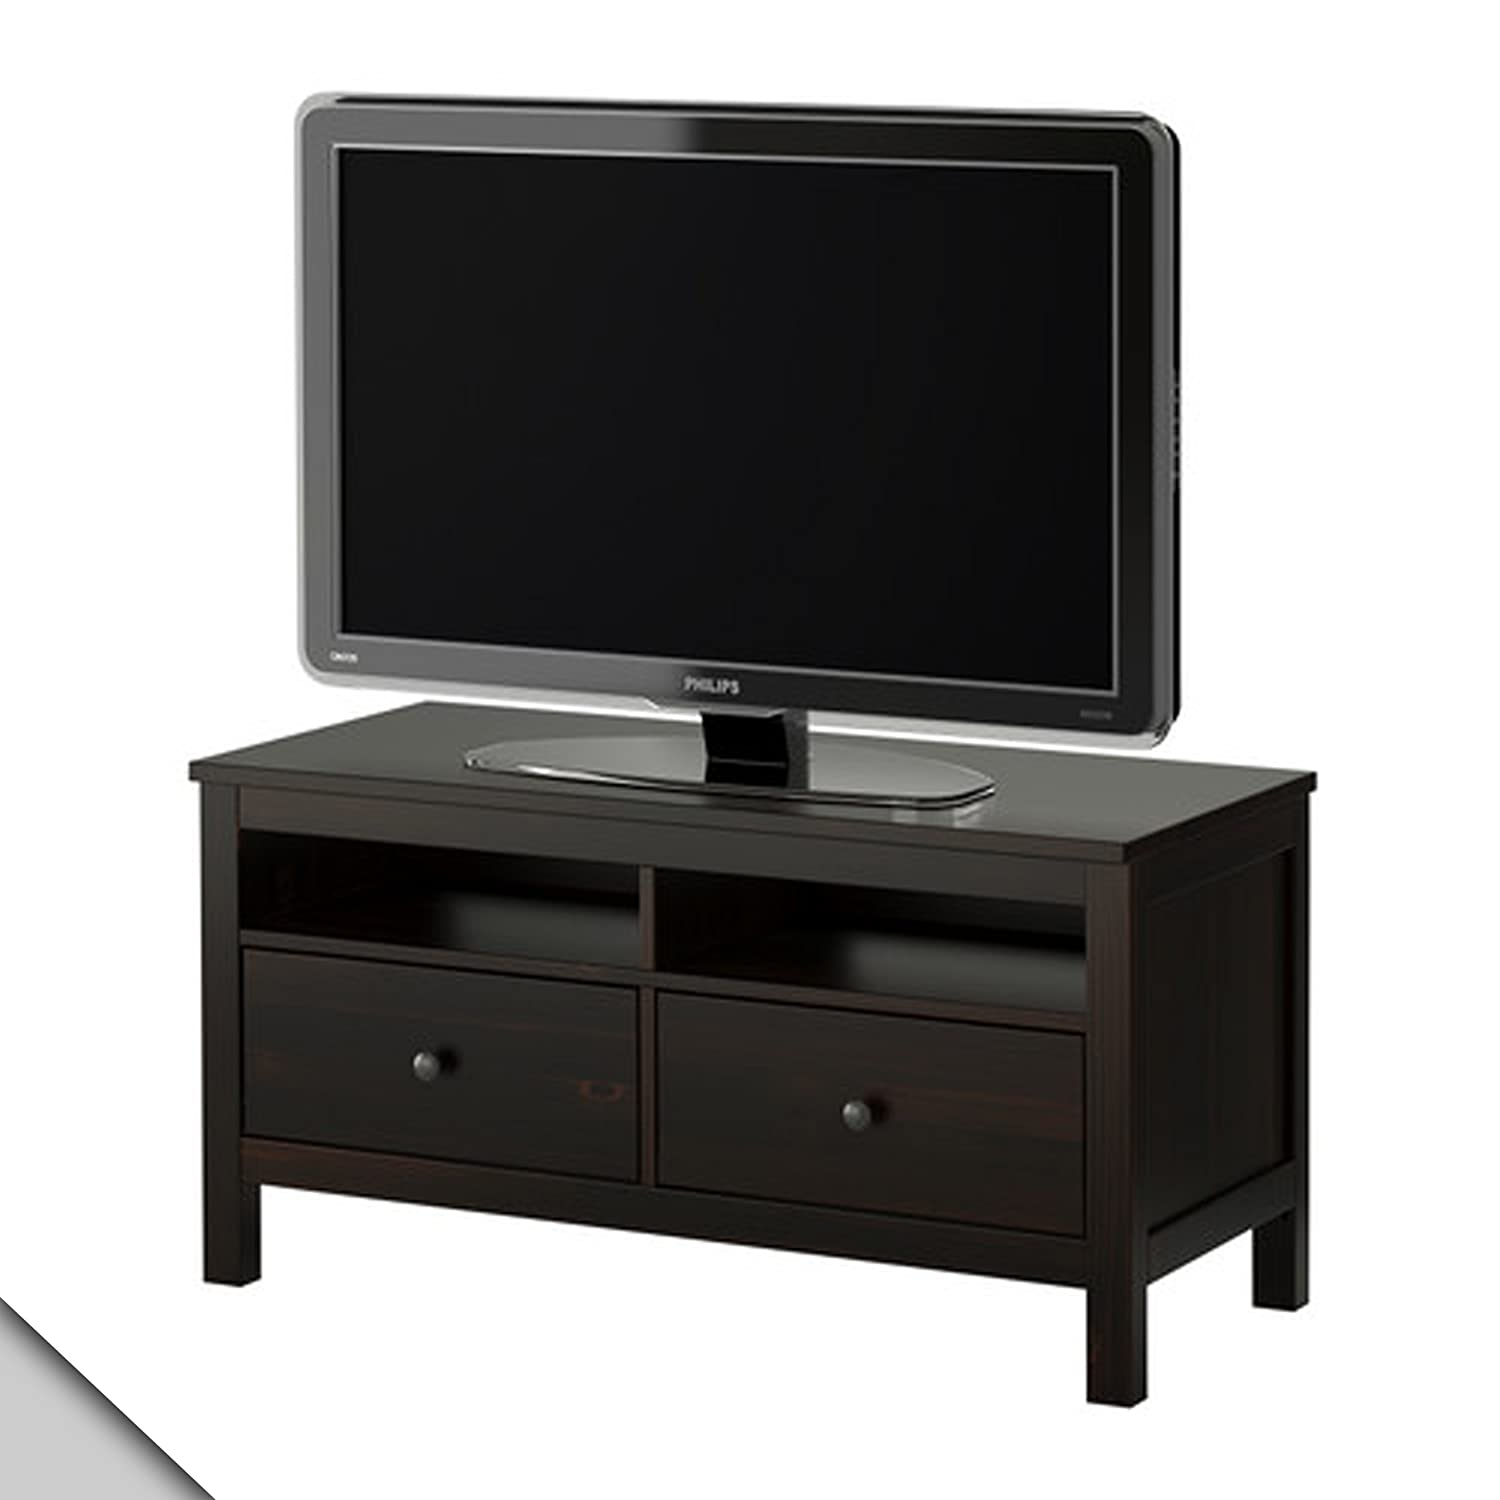 Amazon.com: IKEA - HEMNES TV unit, black-brown: Electronics